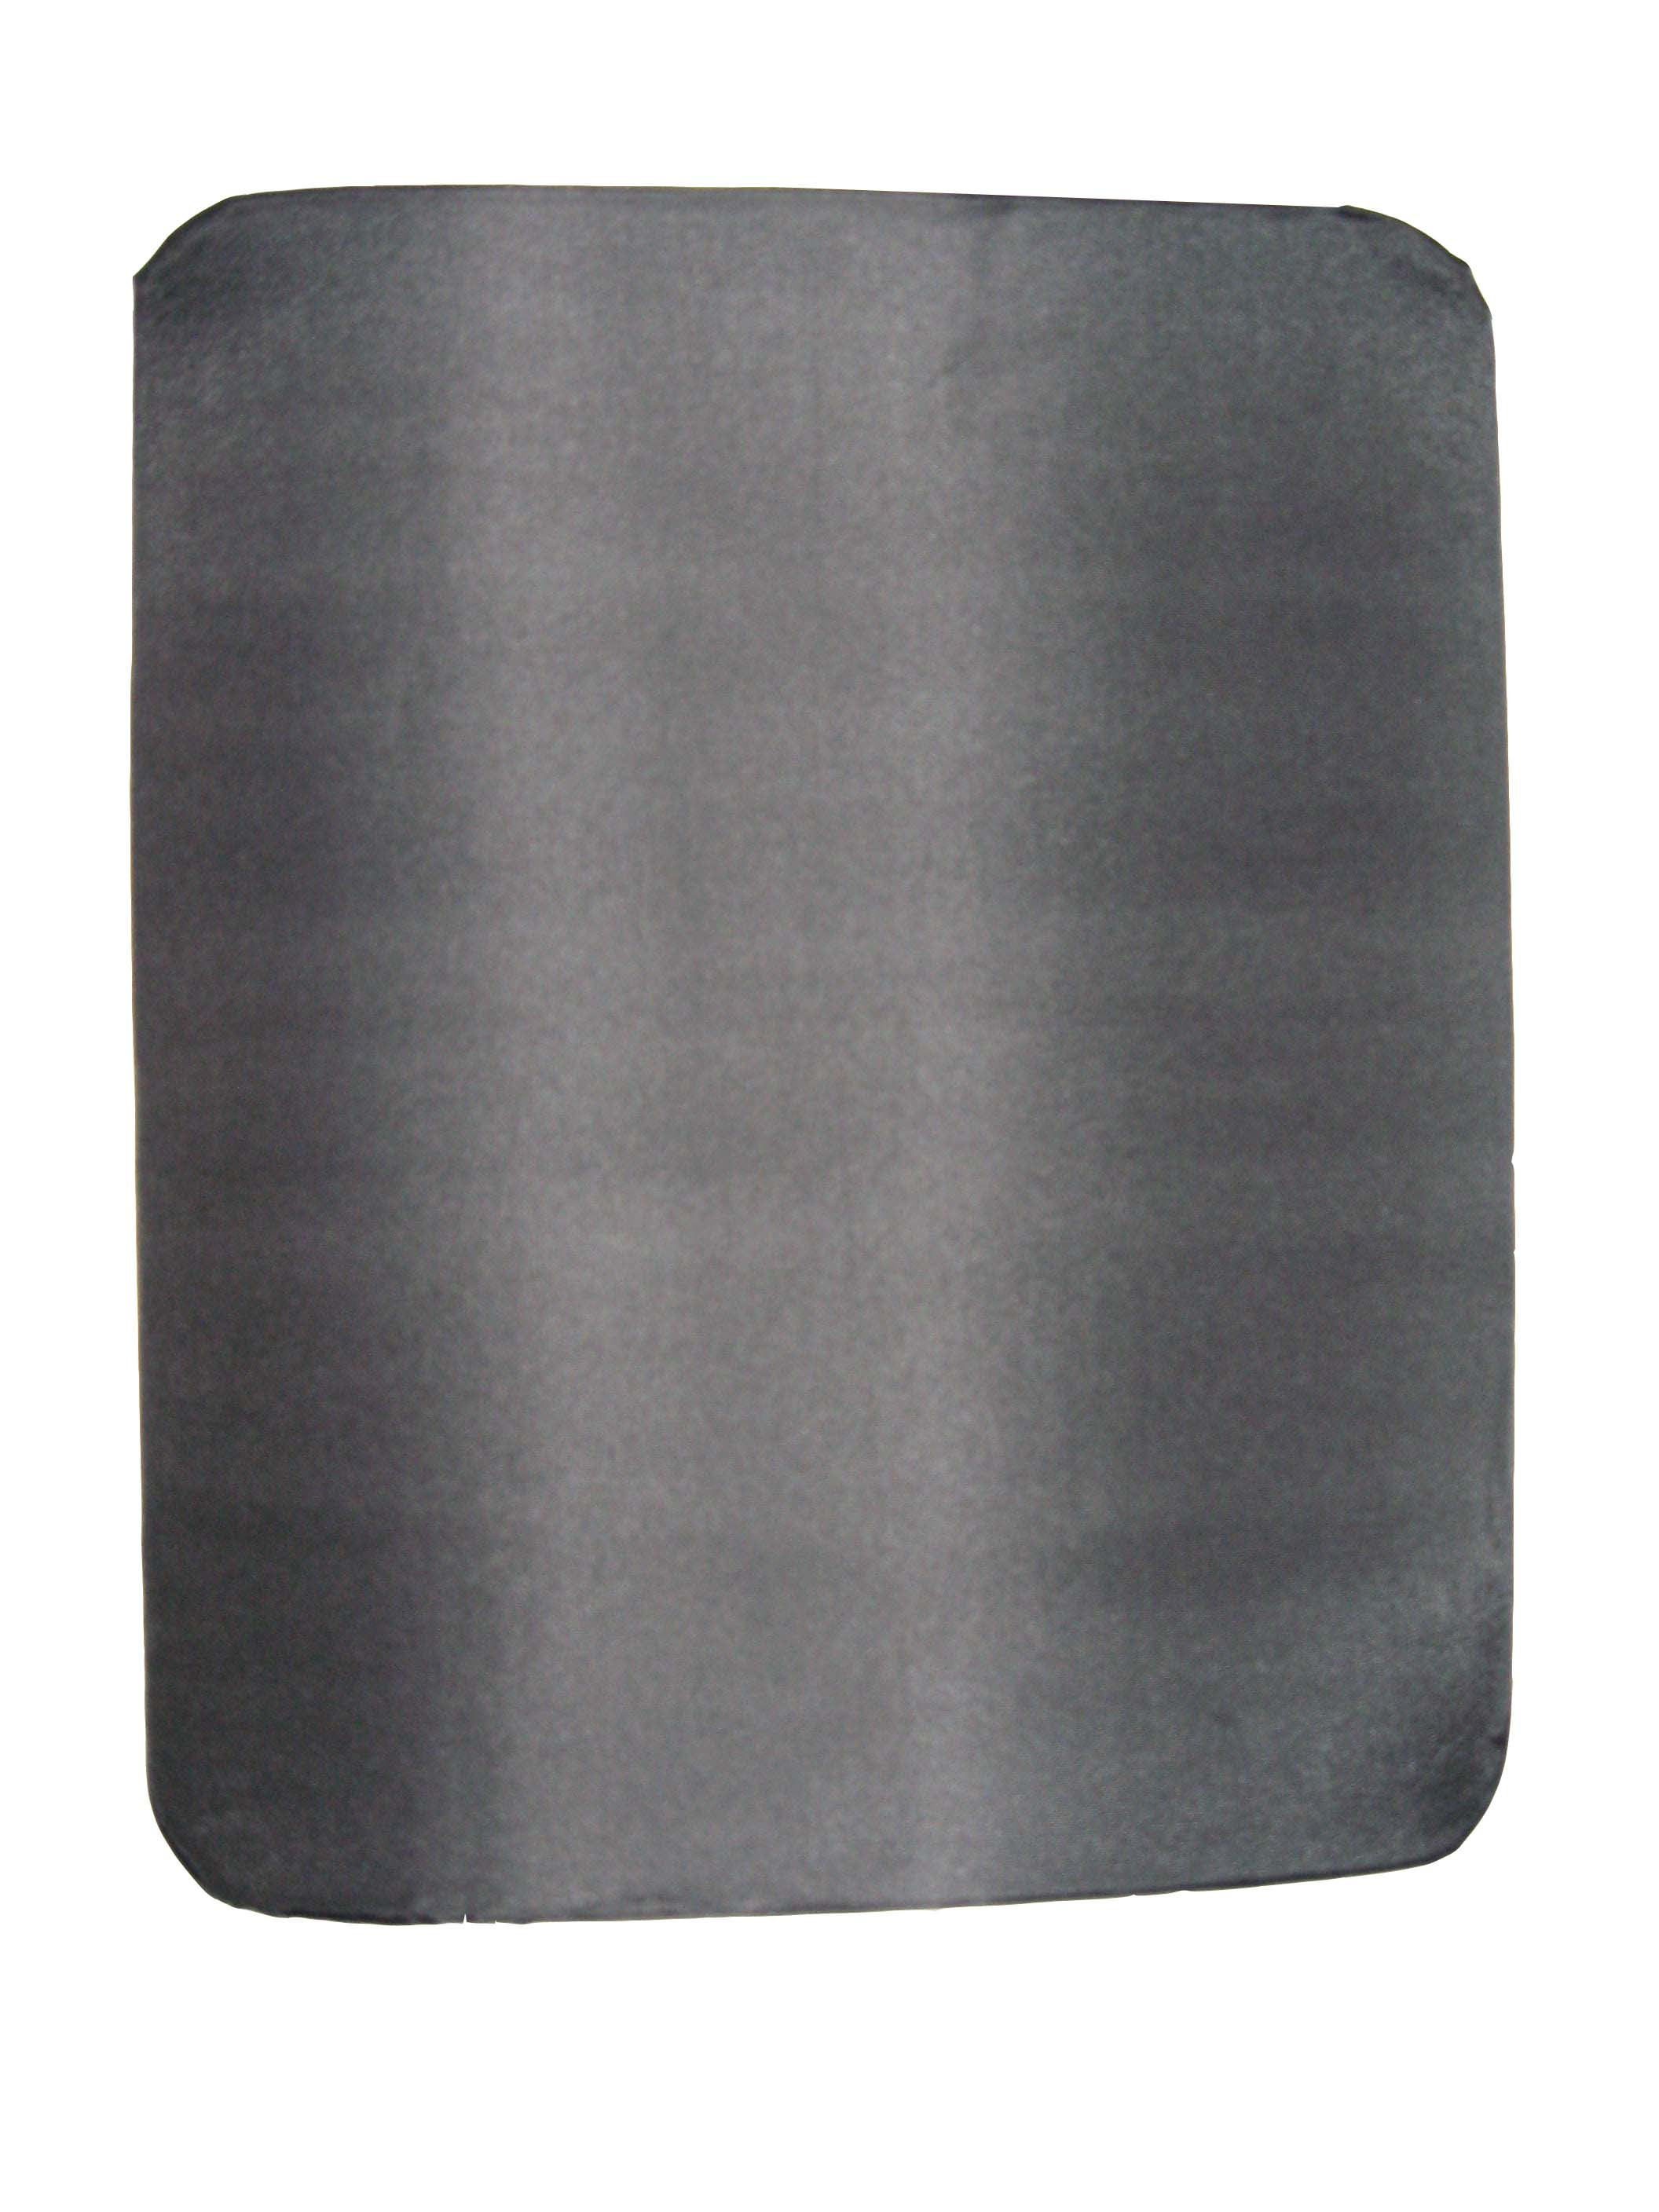 Body Armor Steel Plate